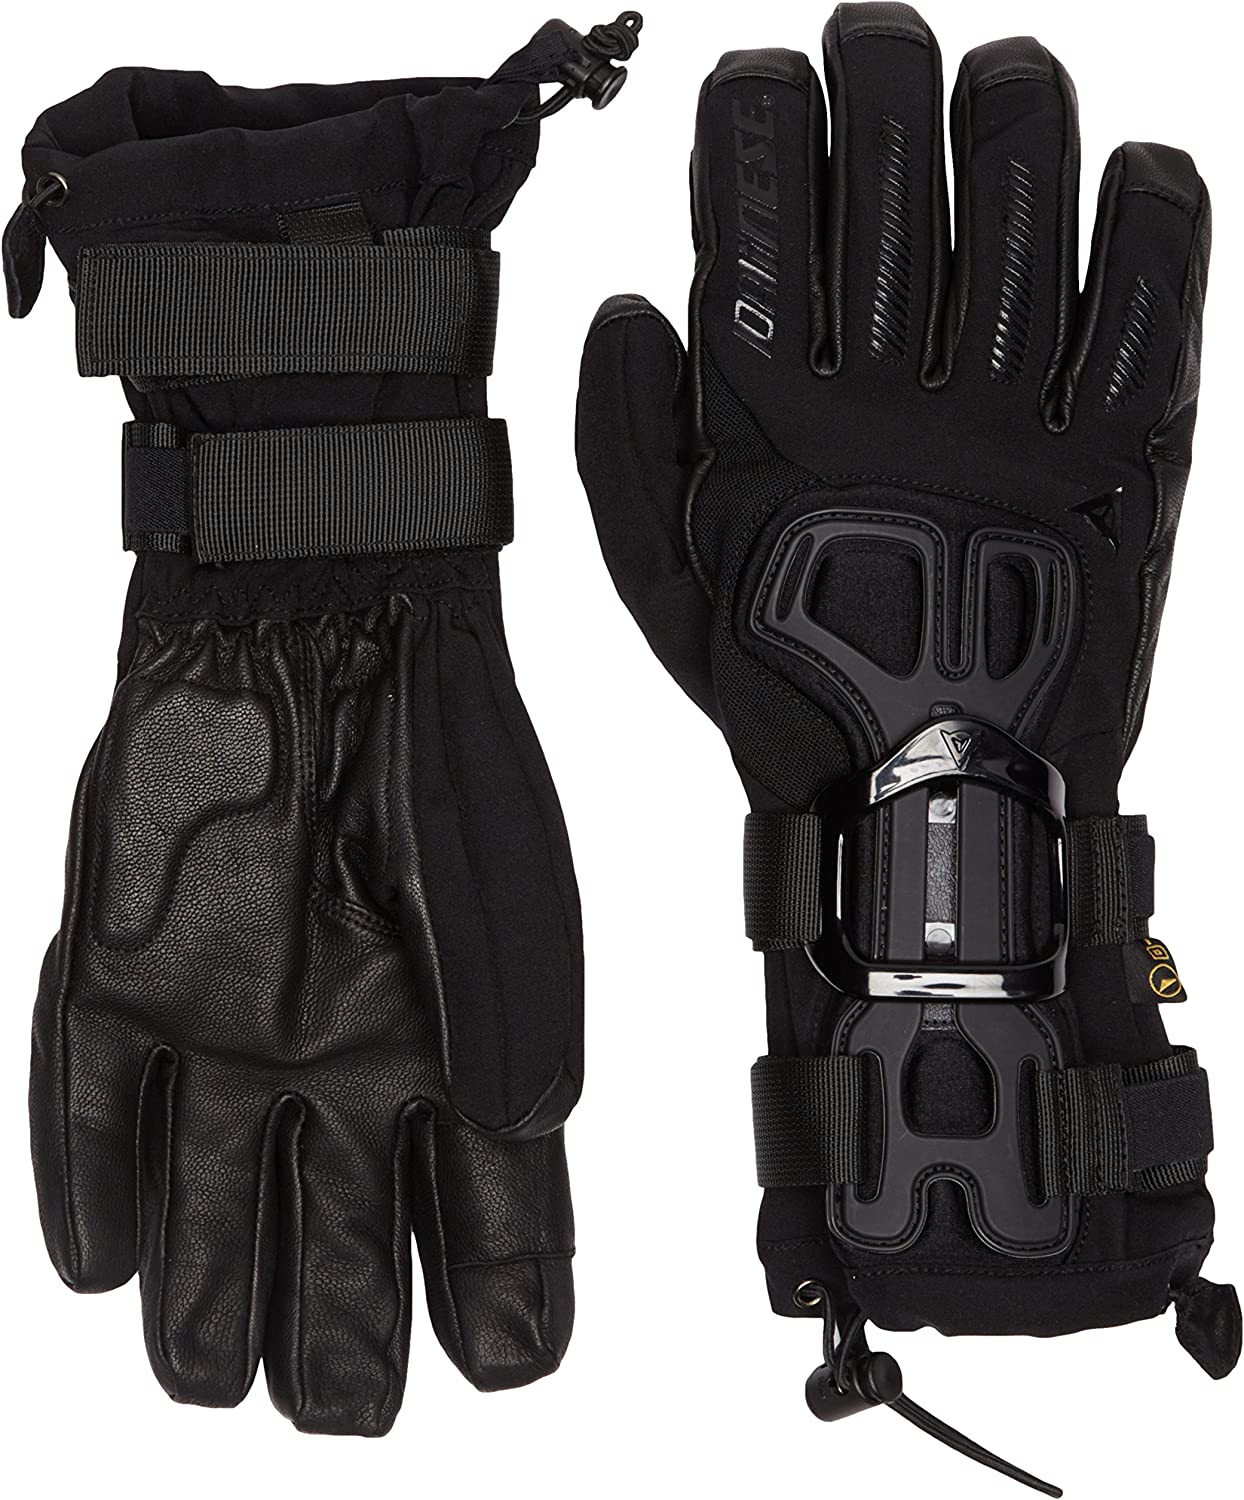 Dainese Baltimore Mall Mens D-Impact 13 Ranking TOP5 D-Dry Glove